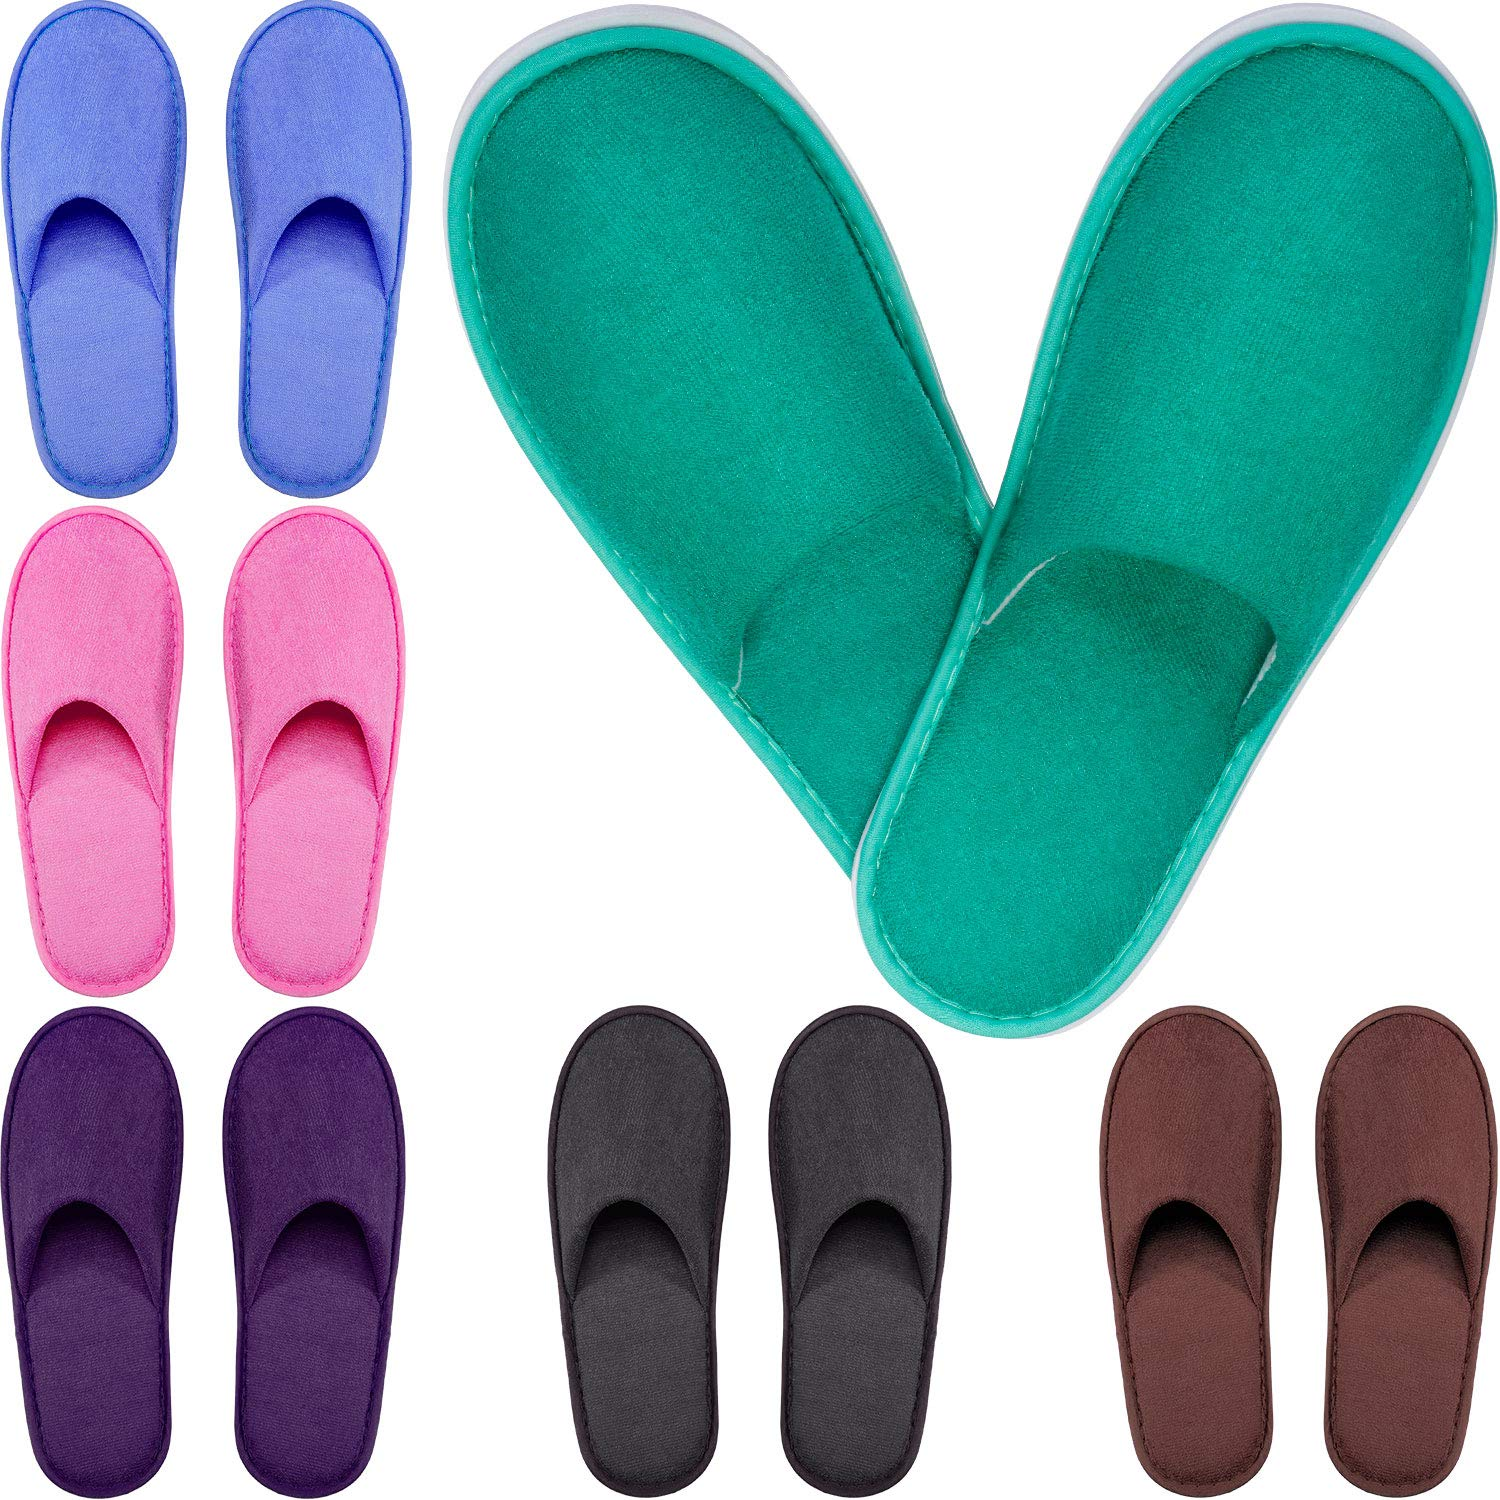 Tatuo Spa Slippers Cotton Thick Guests Slipper House Indoor Slippers Closed Toe Hotel Spa Slippers for Men and Women, Non-Slip Slippers for Hotel, Home, Guest Use, 6 Pairs by Tatuo